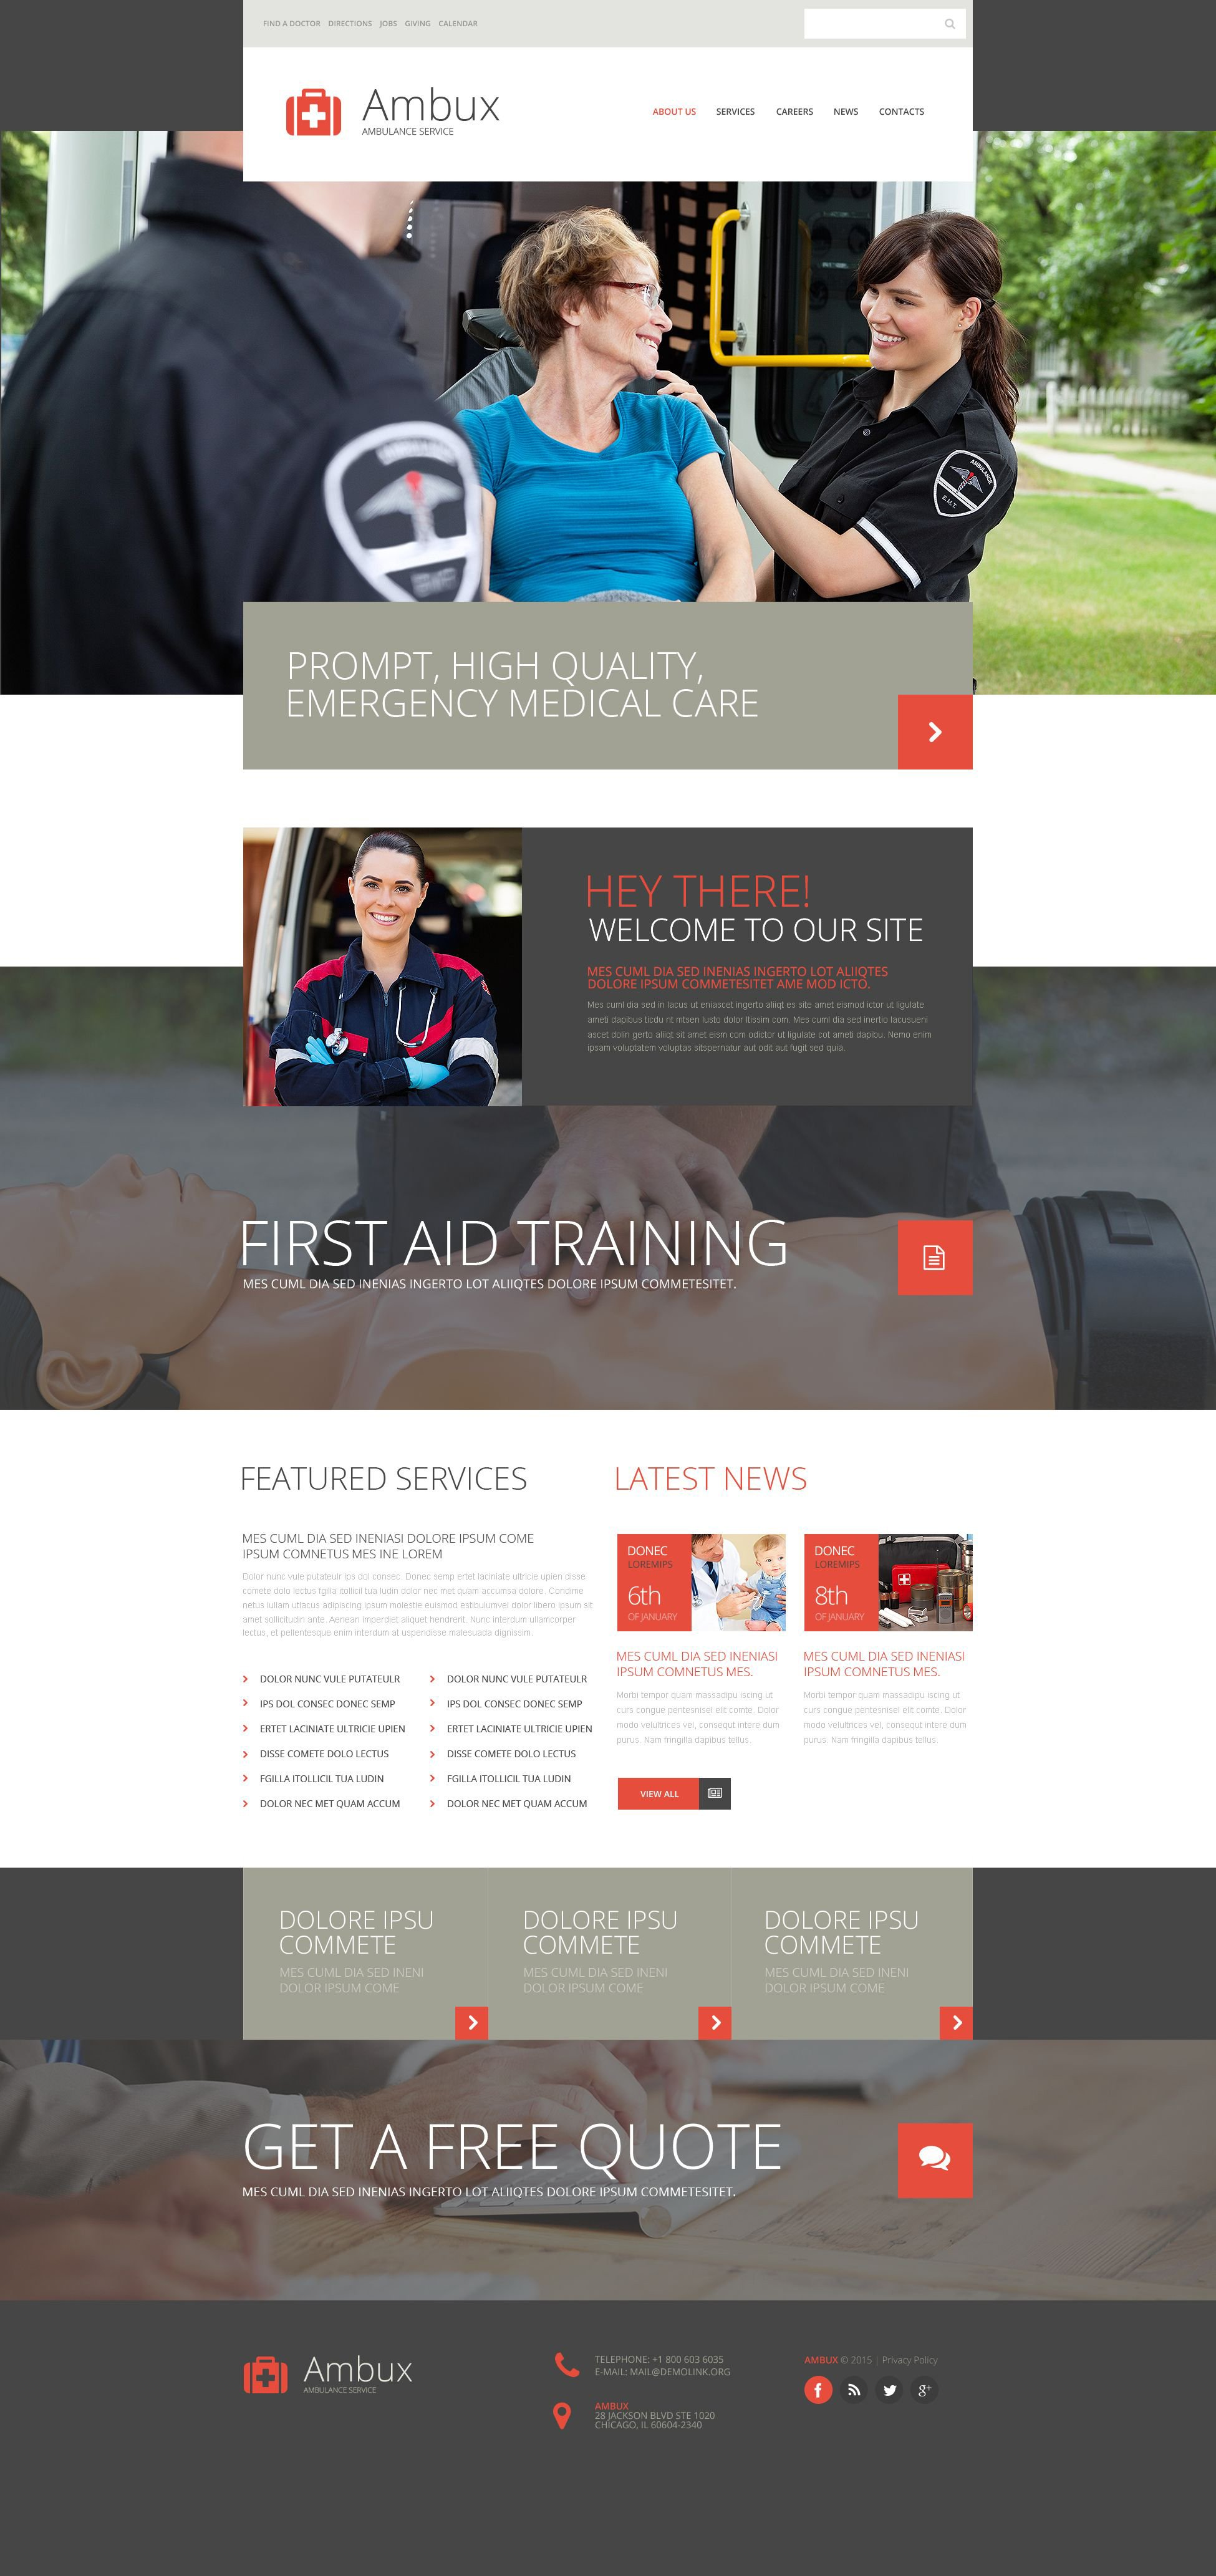 Ambulance Services Website Template